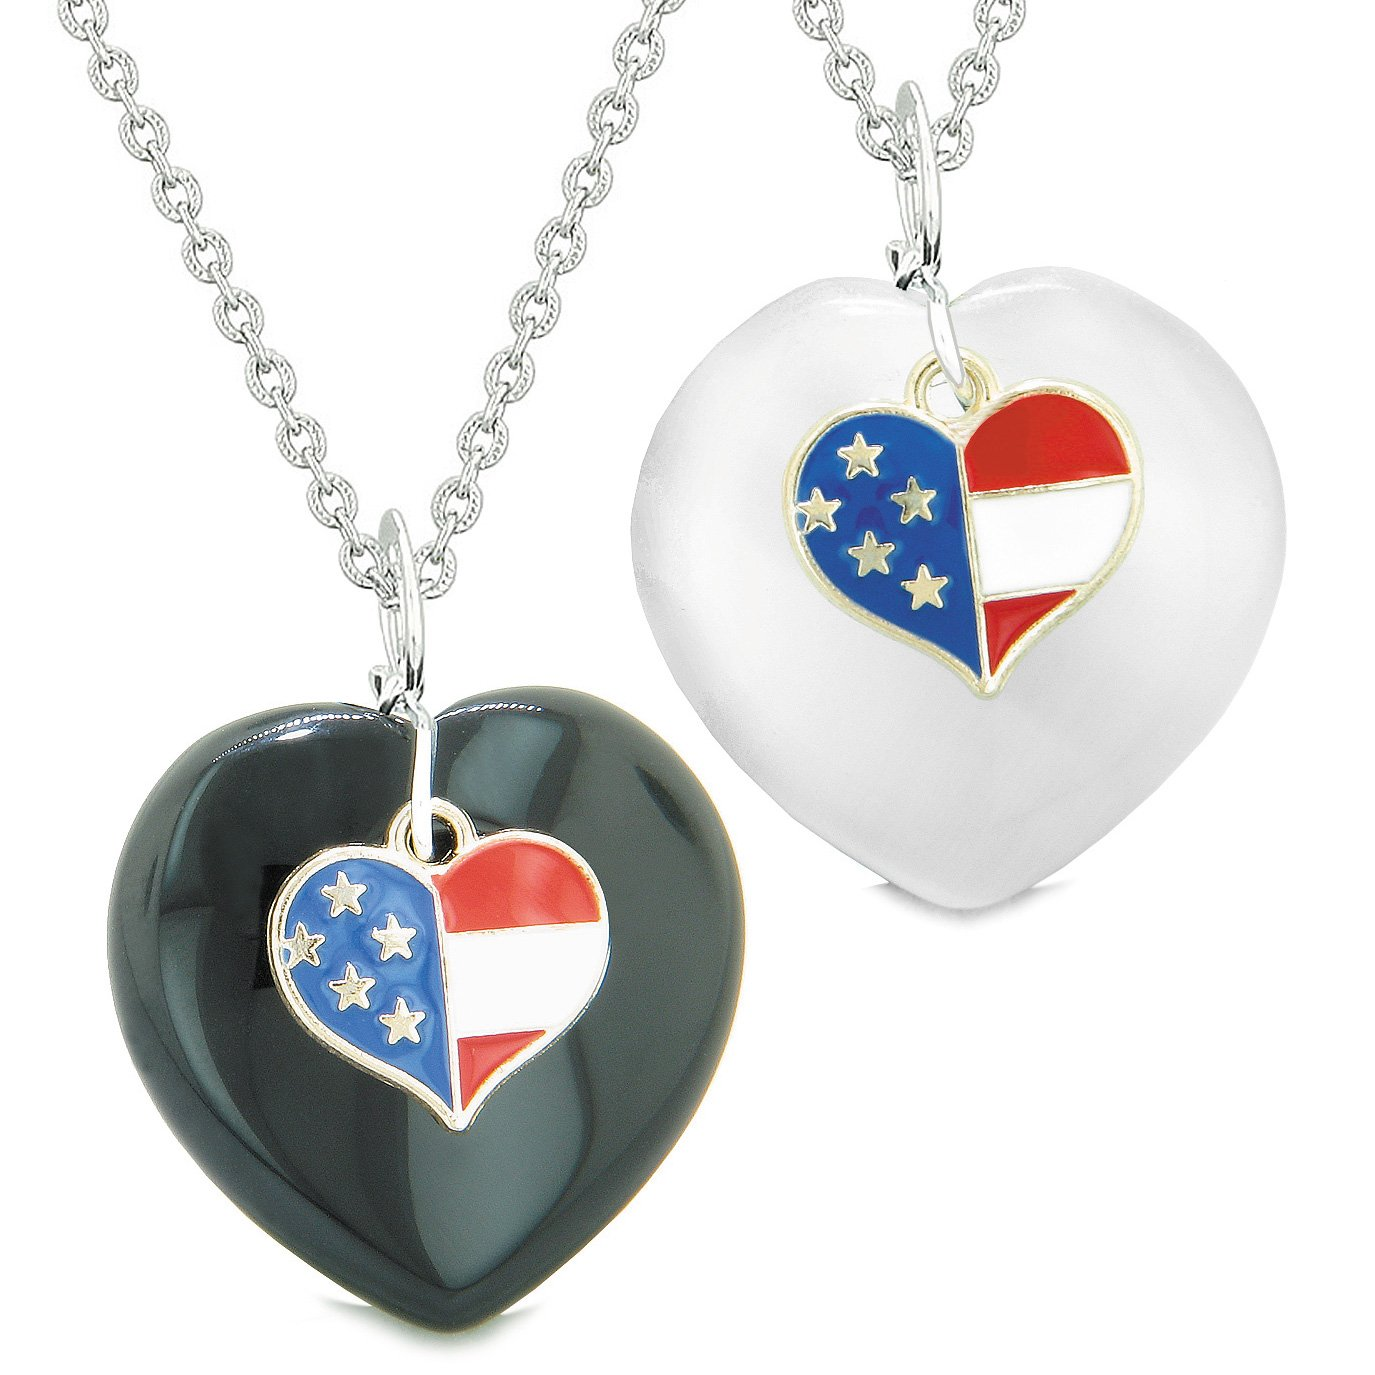 Proud USA Flag Super Heart Charm Love Couples BFF Set Agate White Simulated Cats Eye Amulet Necklaces